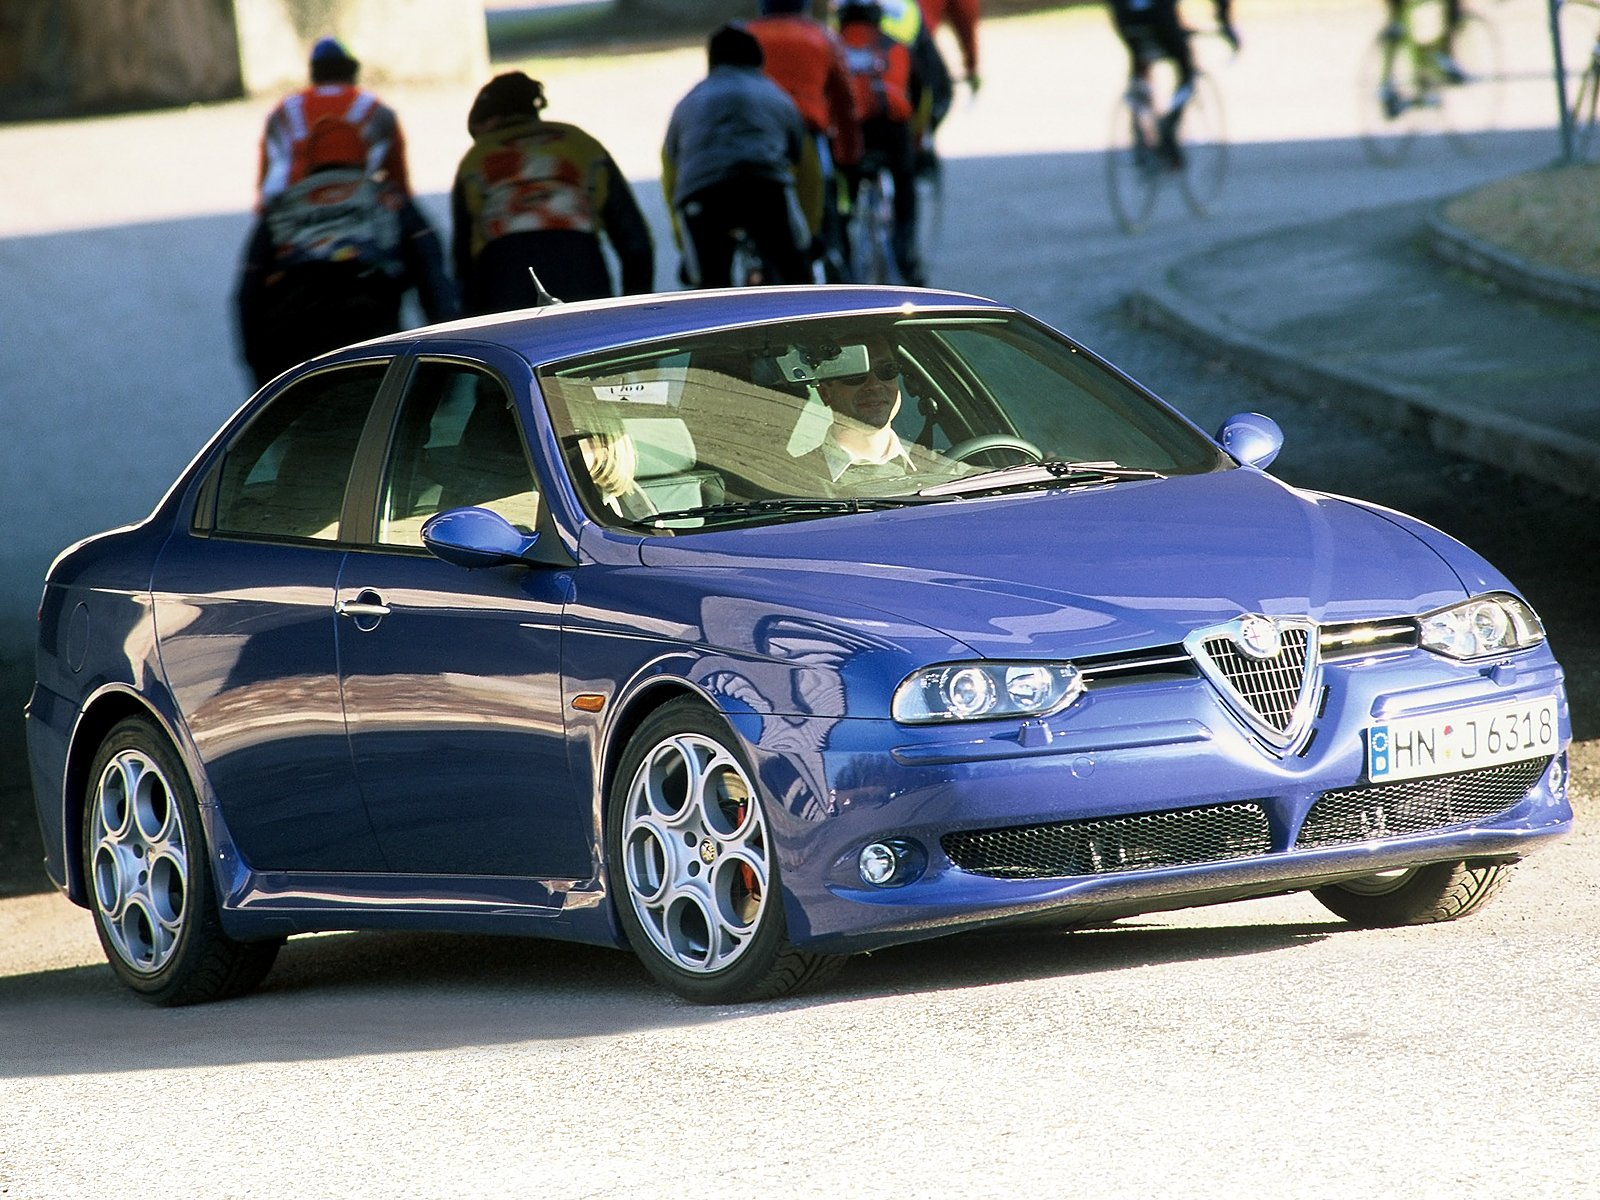 2002 05 alfa romeo 156 gta 932a fg wallpaper 1600x1200 385124 wallpaperup. Black Bedroom Furniture Sets. Home Design Ideas